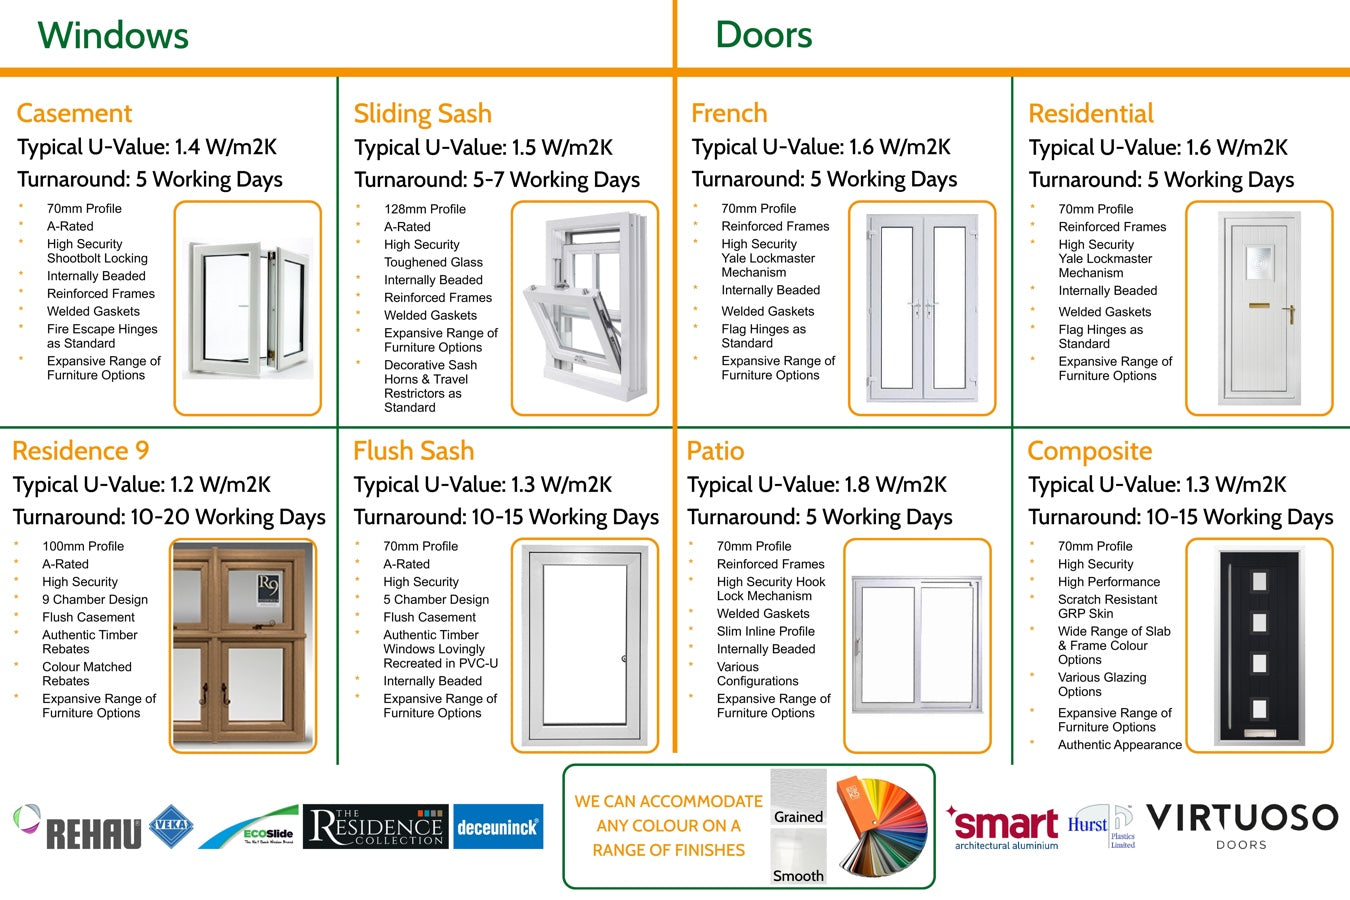 Windows & Doors specification